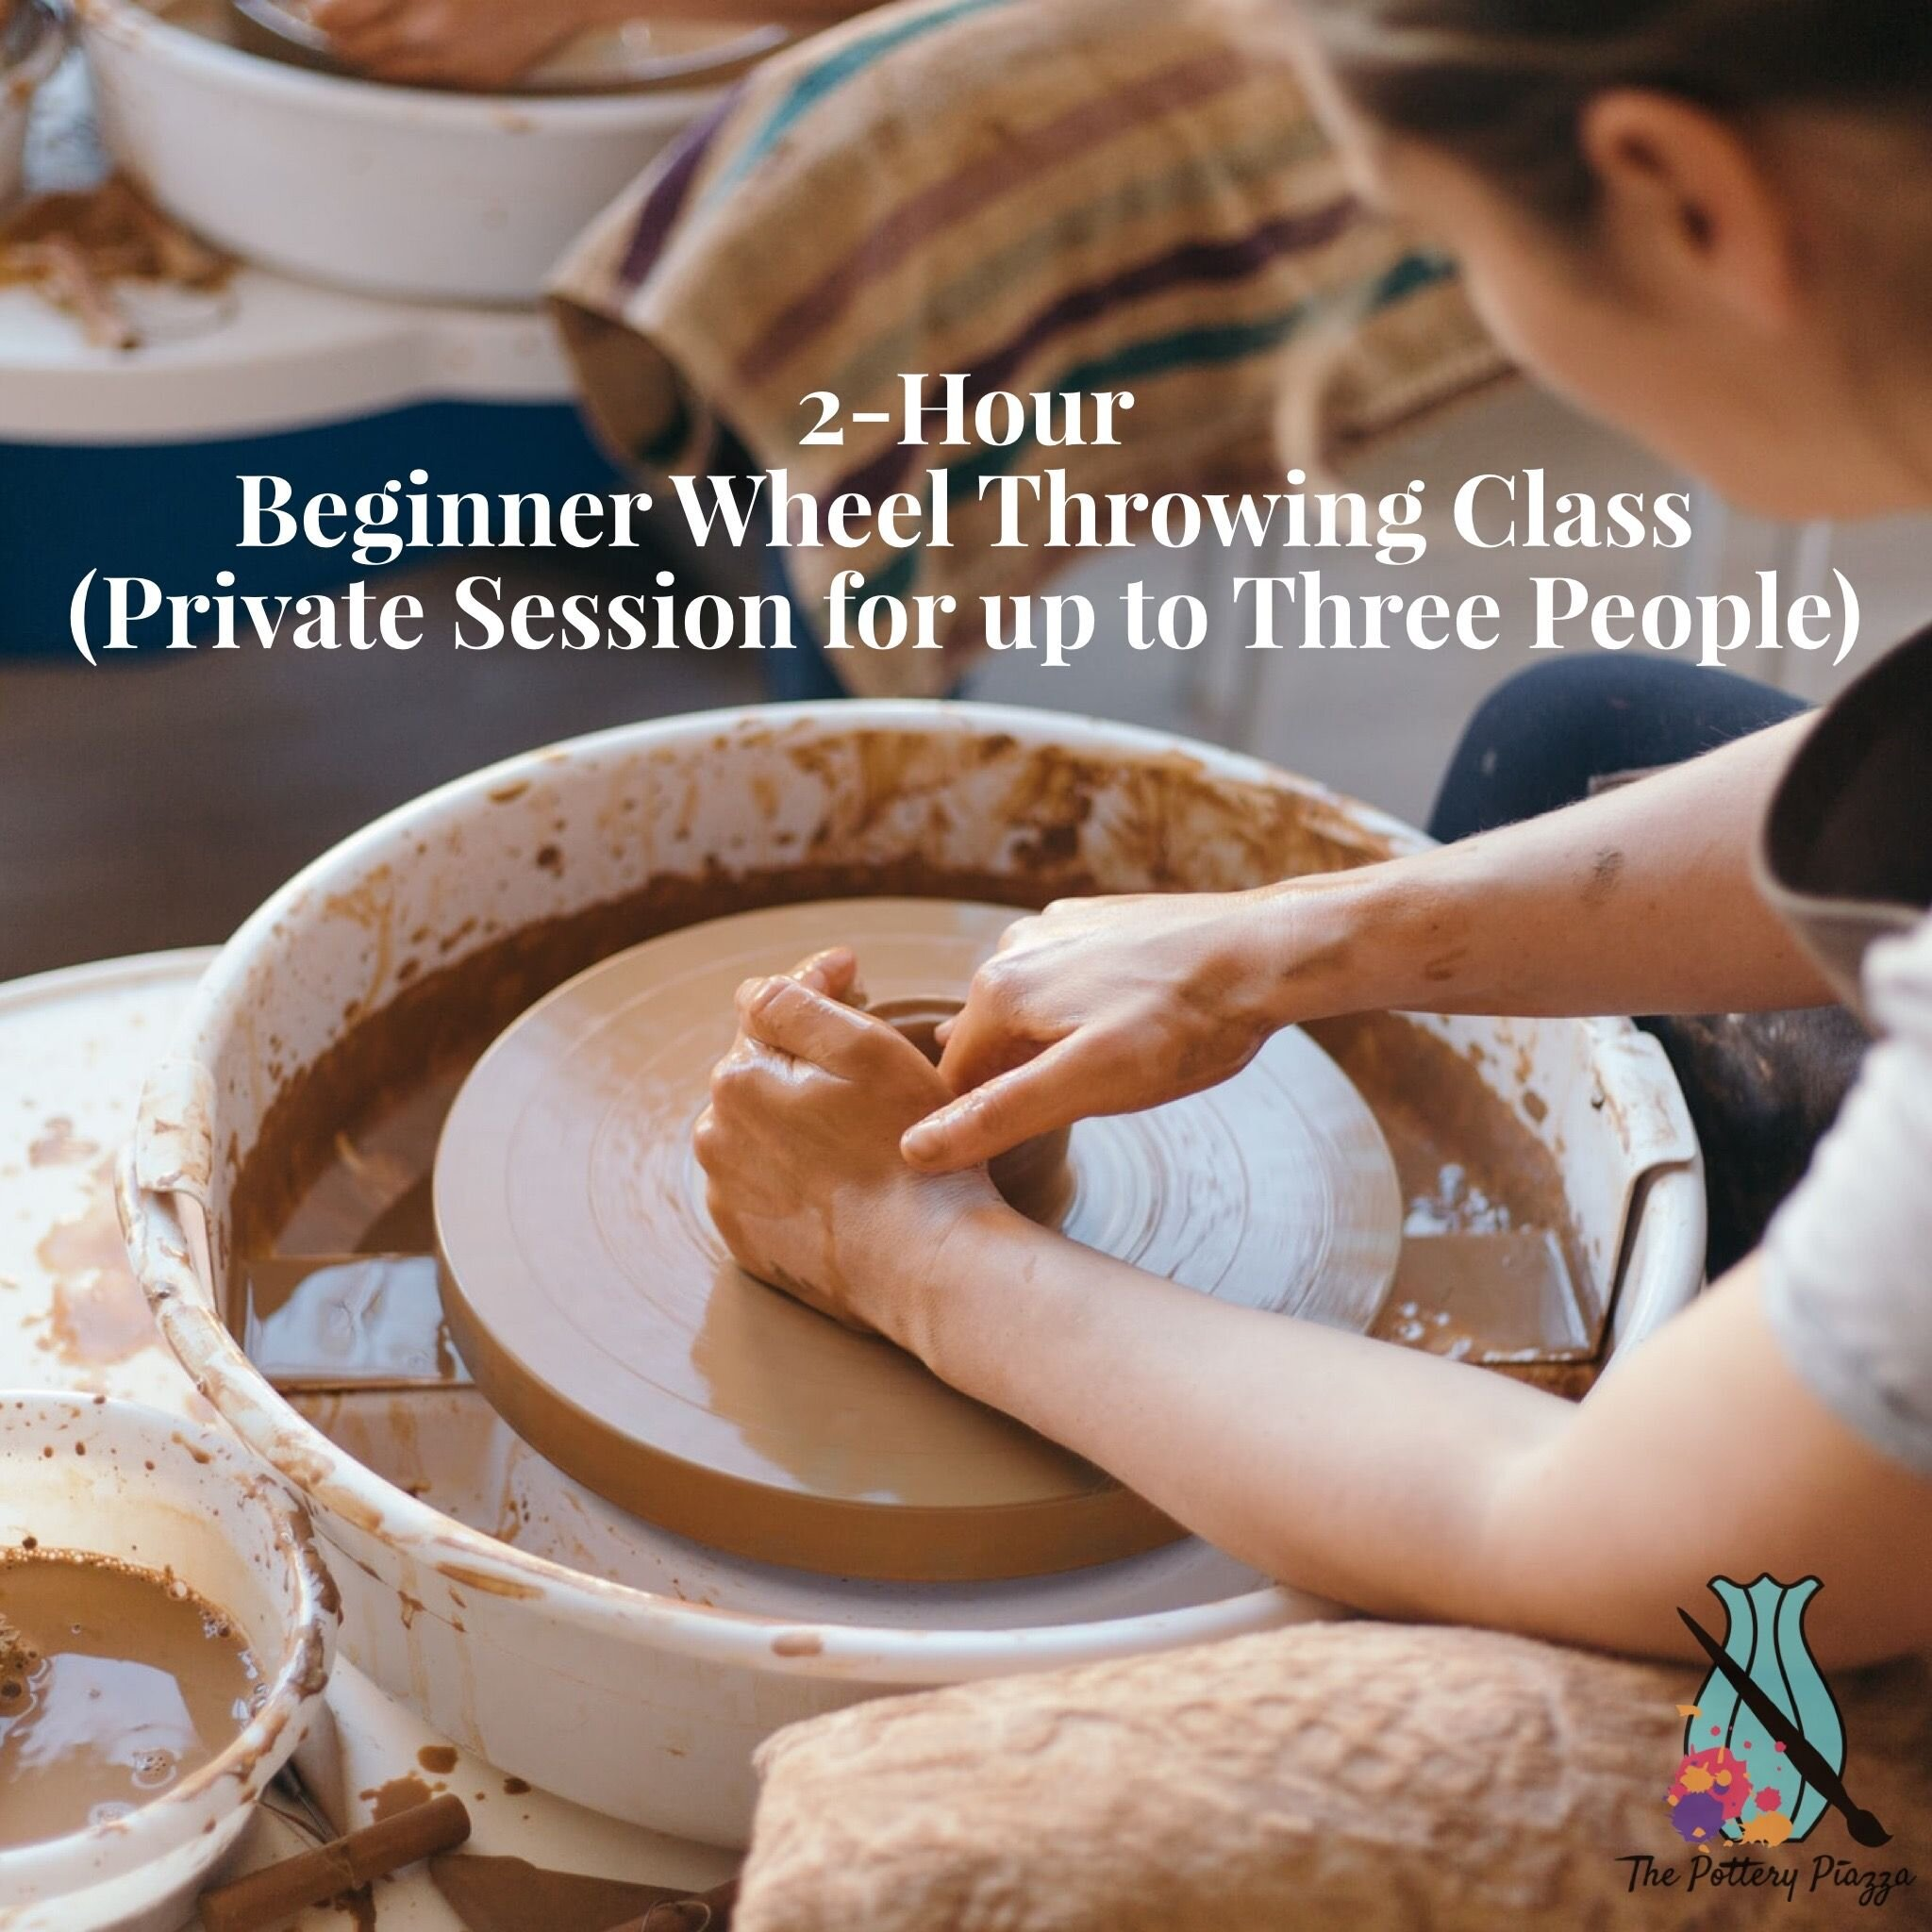 Saturday February 13th 12 30 2 30pm Private Session For 1 3 People The Pottery Piazza